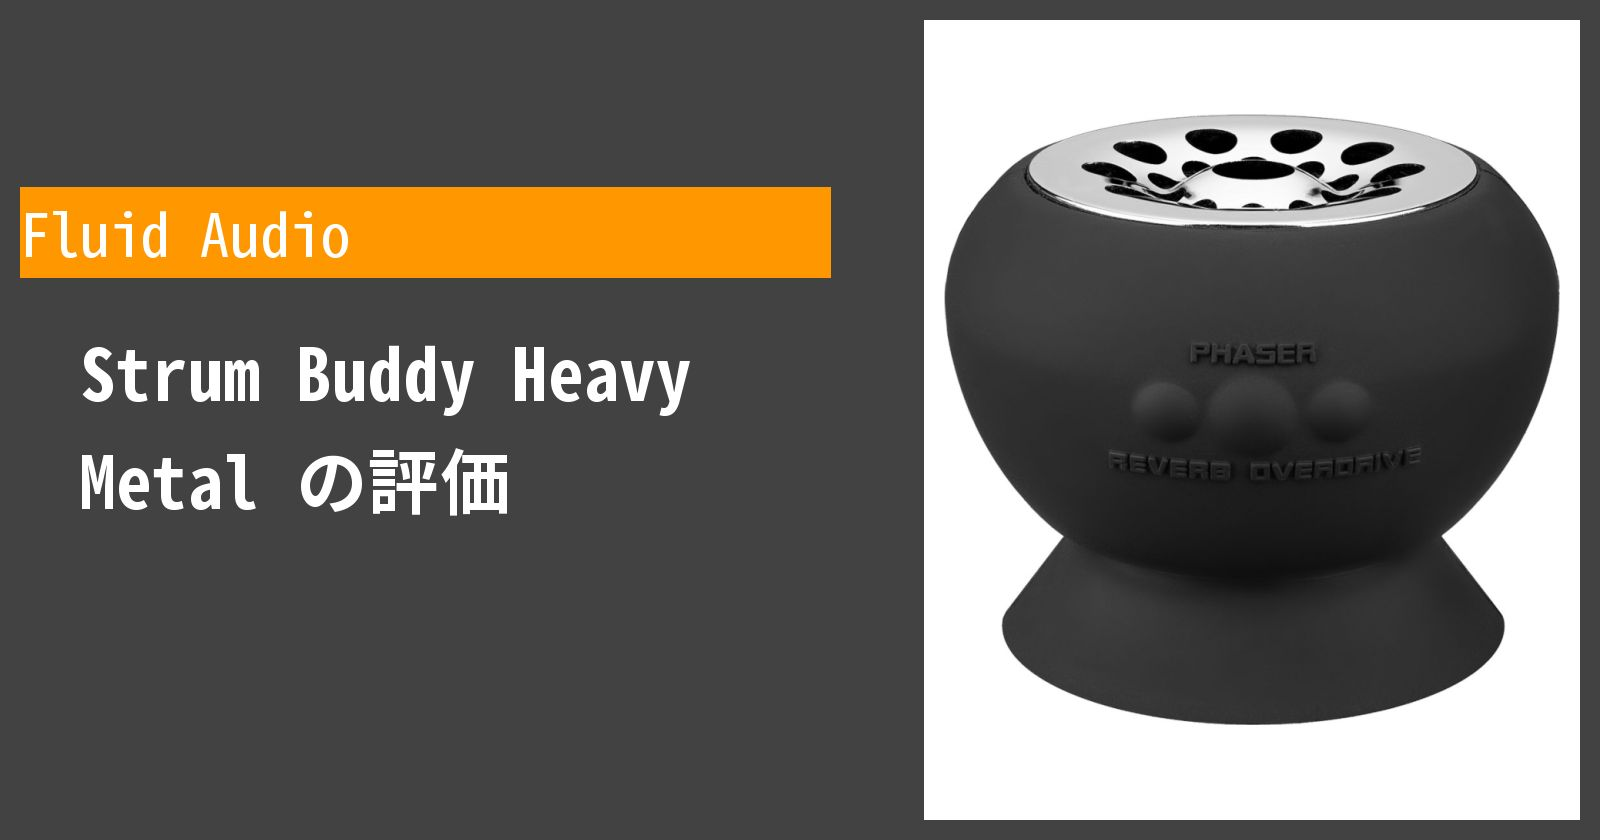 Strum Buddy Heavy Metalを徹底評価